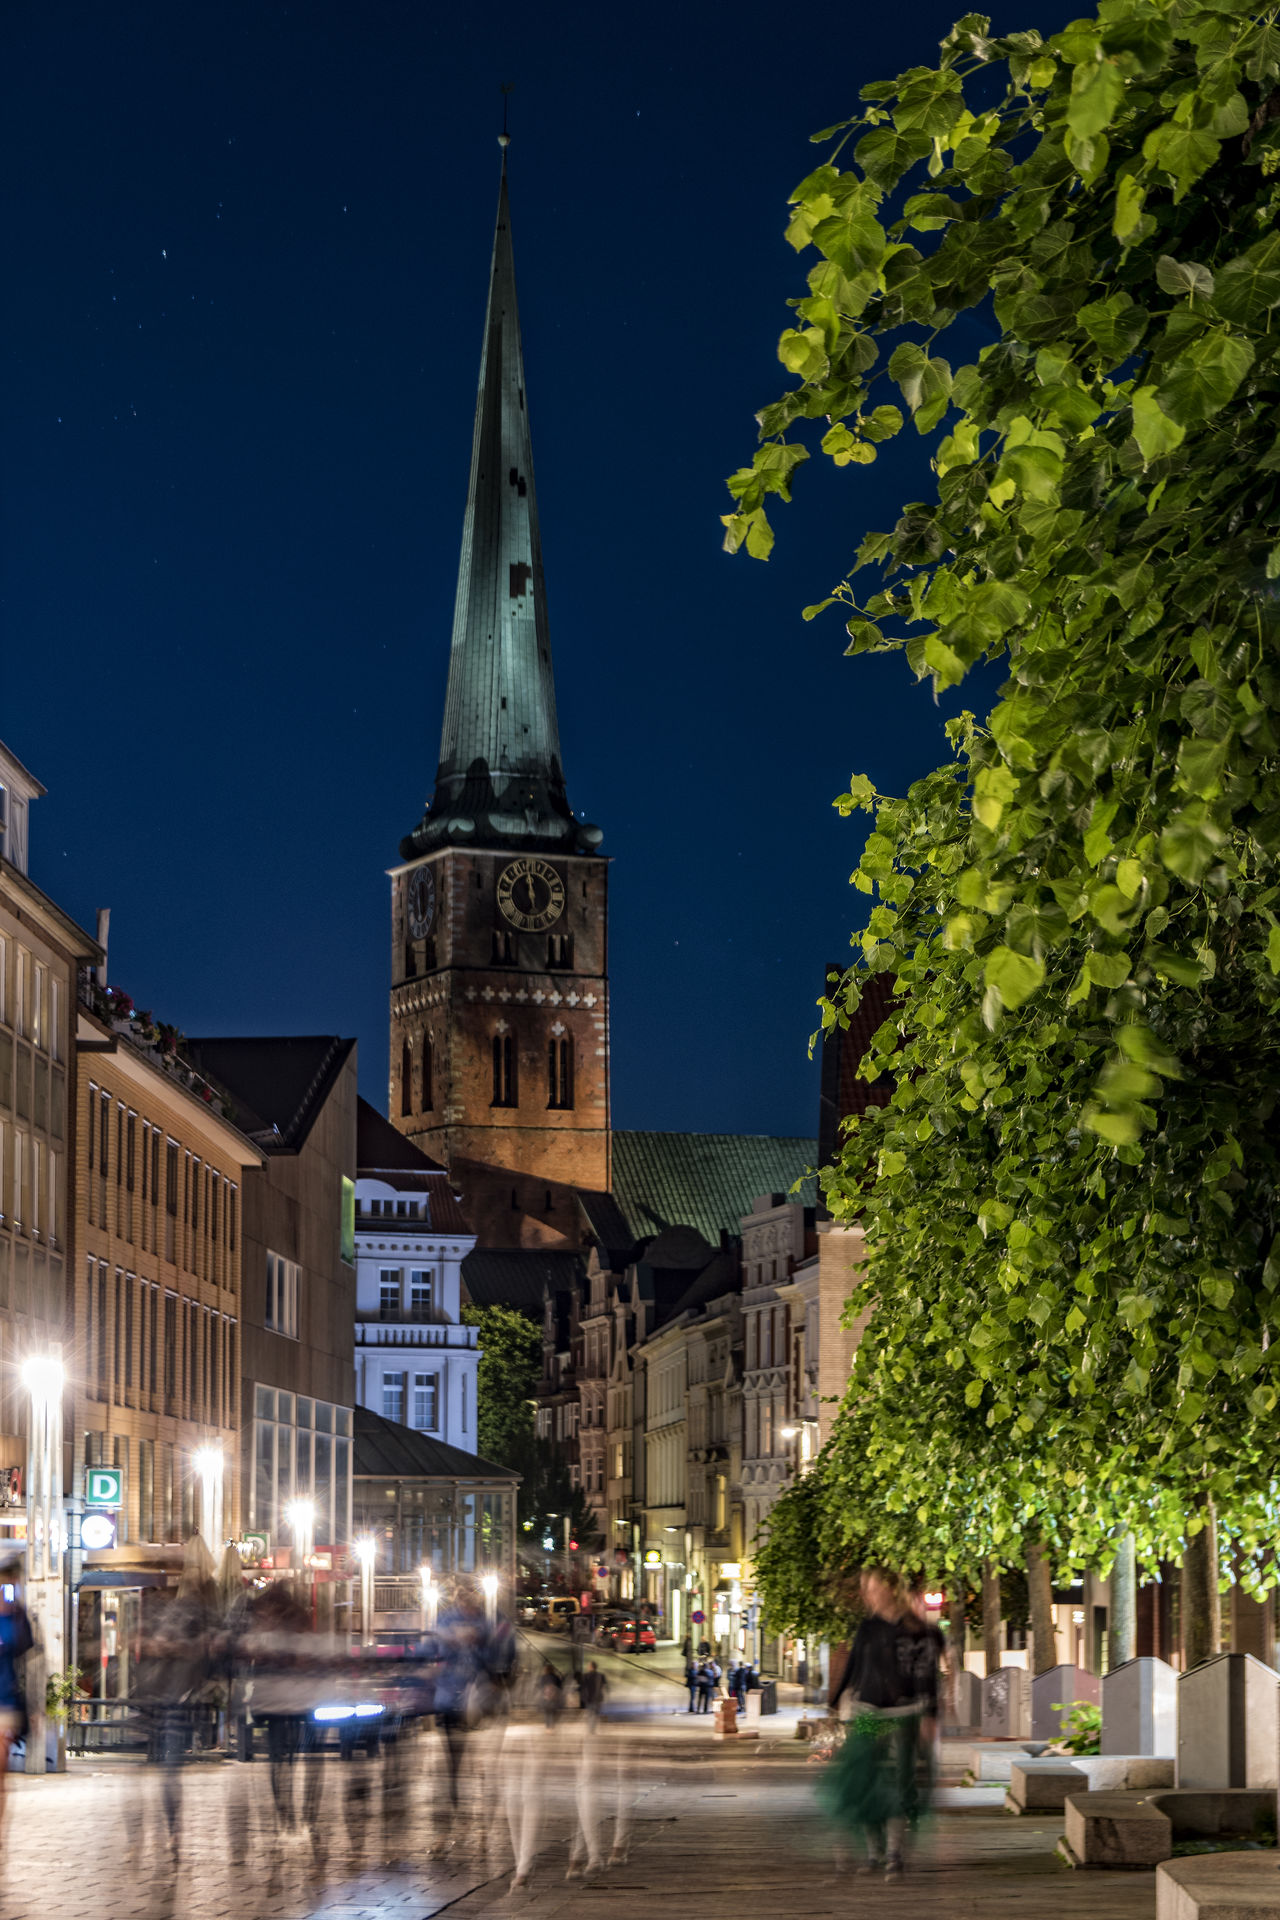 St. Jakobi Kirche Lübeck Architecture Building Exterior Built Structure City Clock Clock Tower Illuminated Large Group Of People Motion Blur Nature Night Outdoors People Place Of Worship Religion Sky St. Jakobi Kirche Zu Lübeck Tree